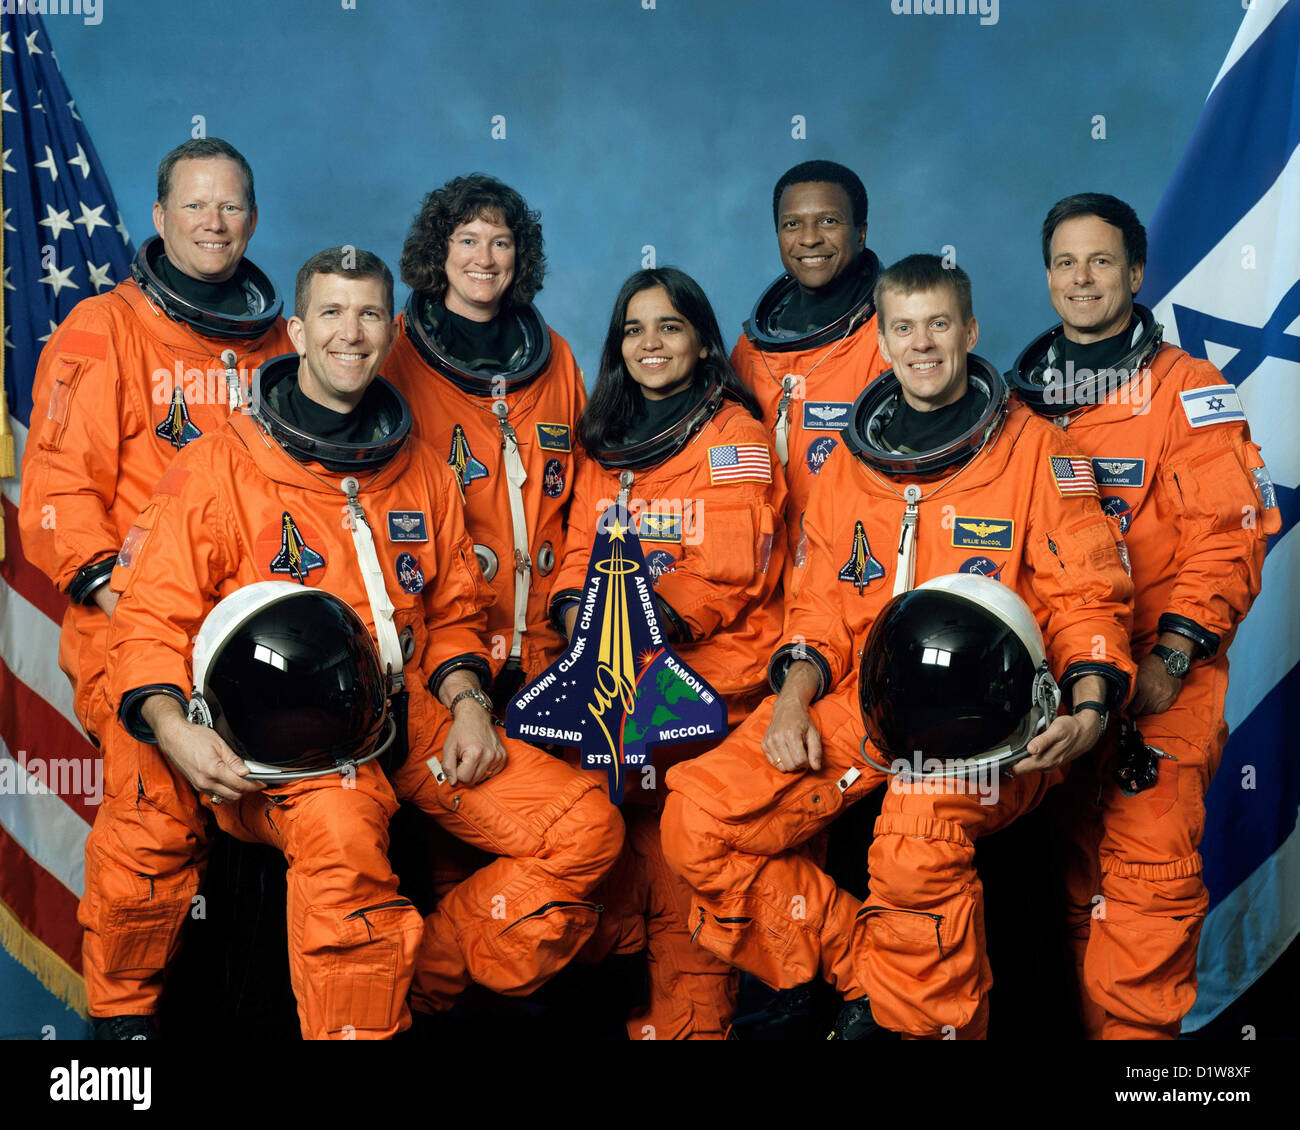 Space Shuttle Columbia's mission crew STS-107 - Stock Image